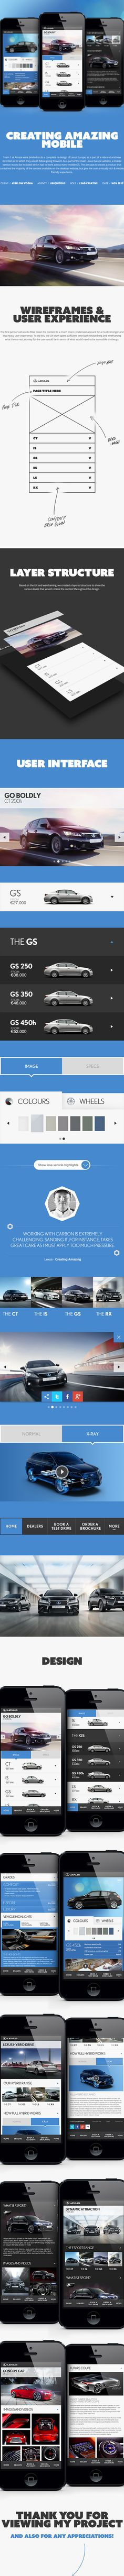 Lexus 'Creating Amazing' Mobile by Sean Hobman, via Behance Web Design, App Ui Design, User Interface Design, Site Design, Infiniti Q50, Wireframe, Conception D'applications, Design Spartan, Iphone App Layout